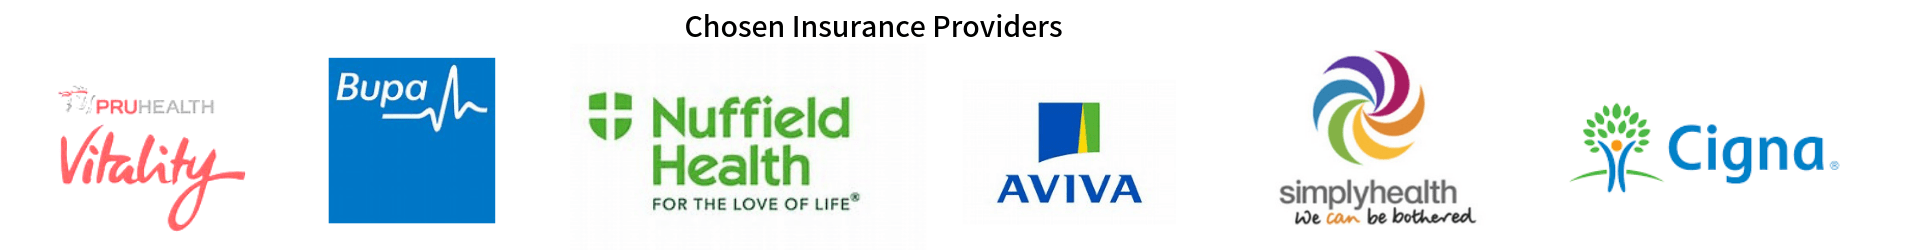 Insurance Providers Website Pic (Wecompress.Com)